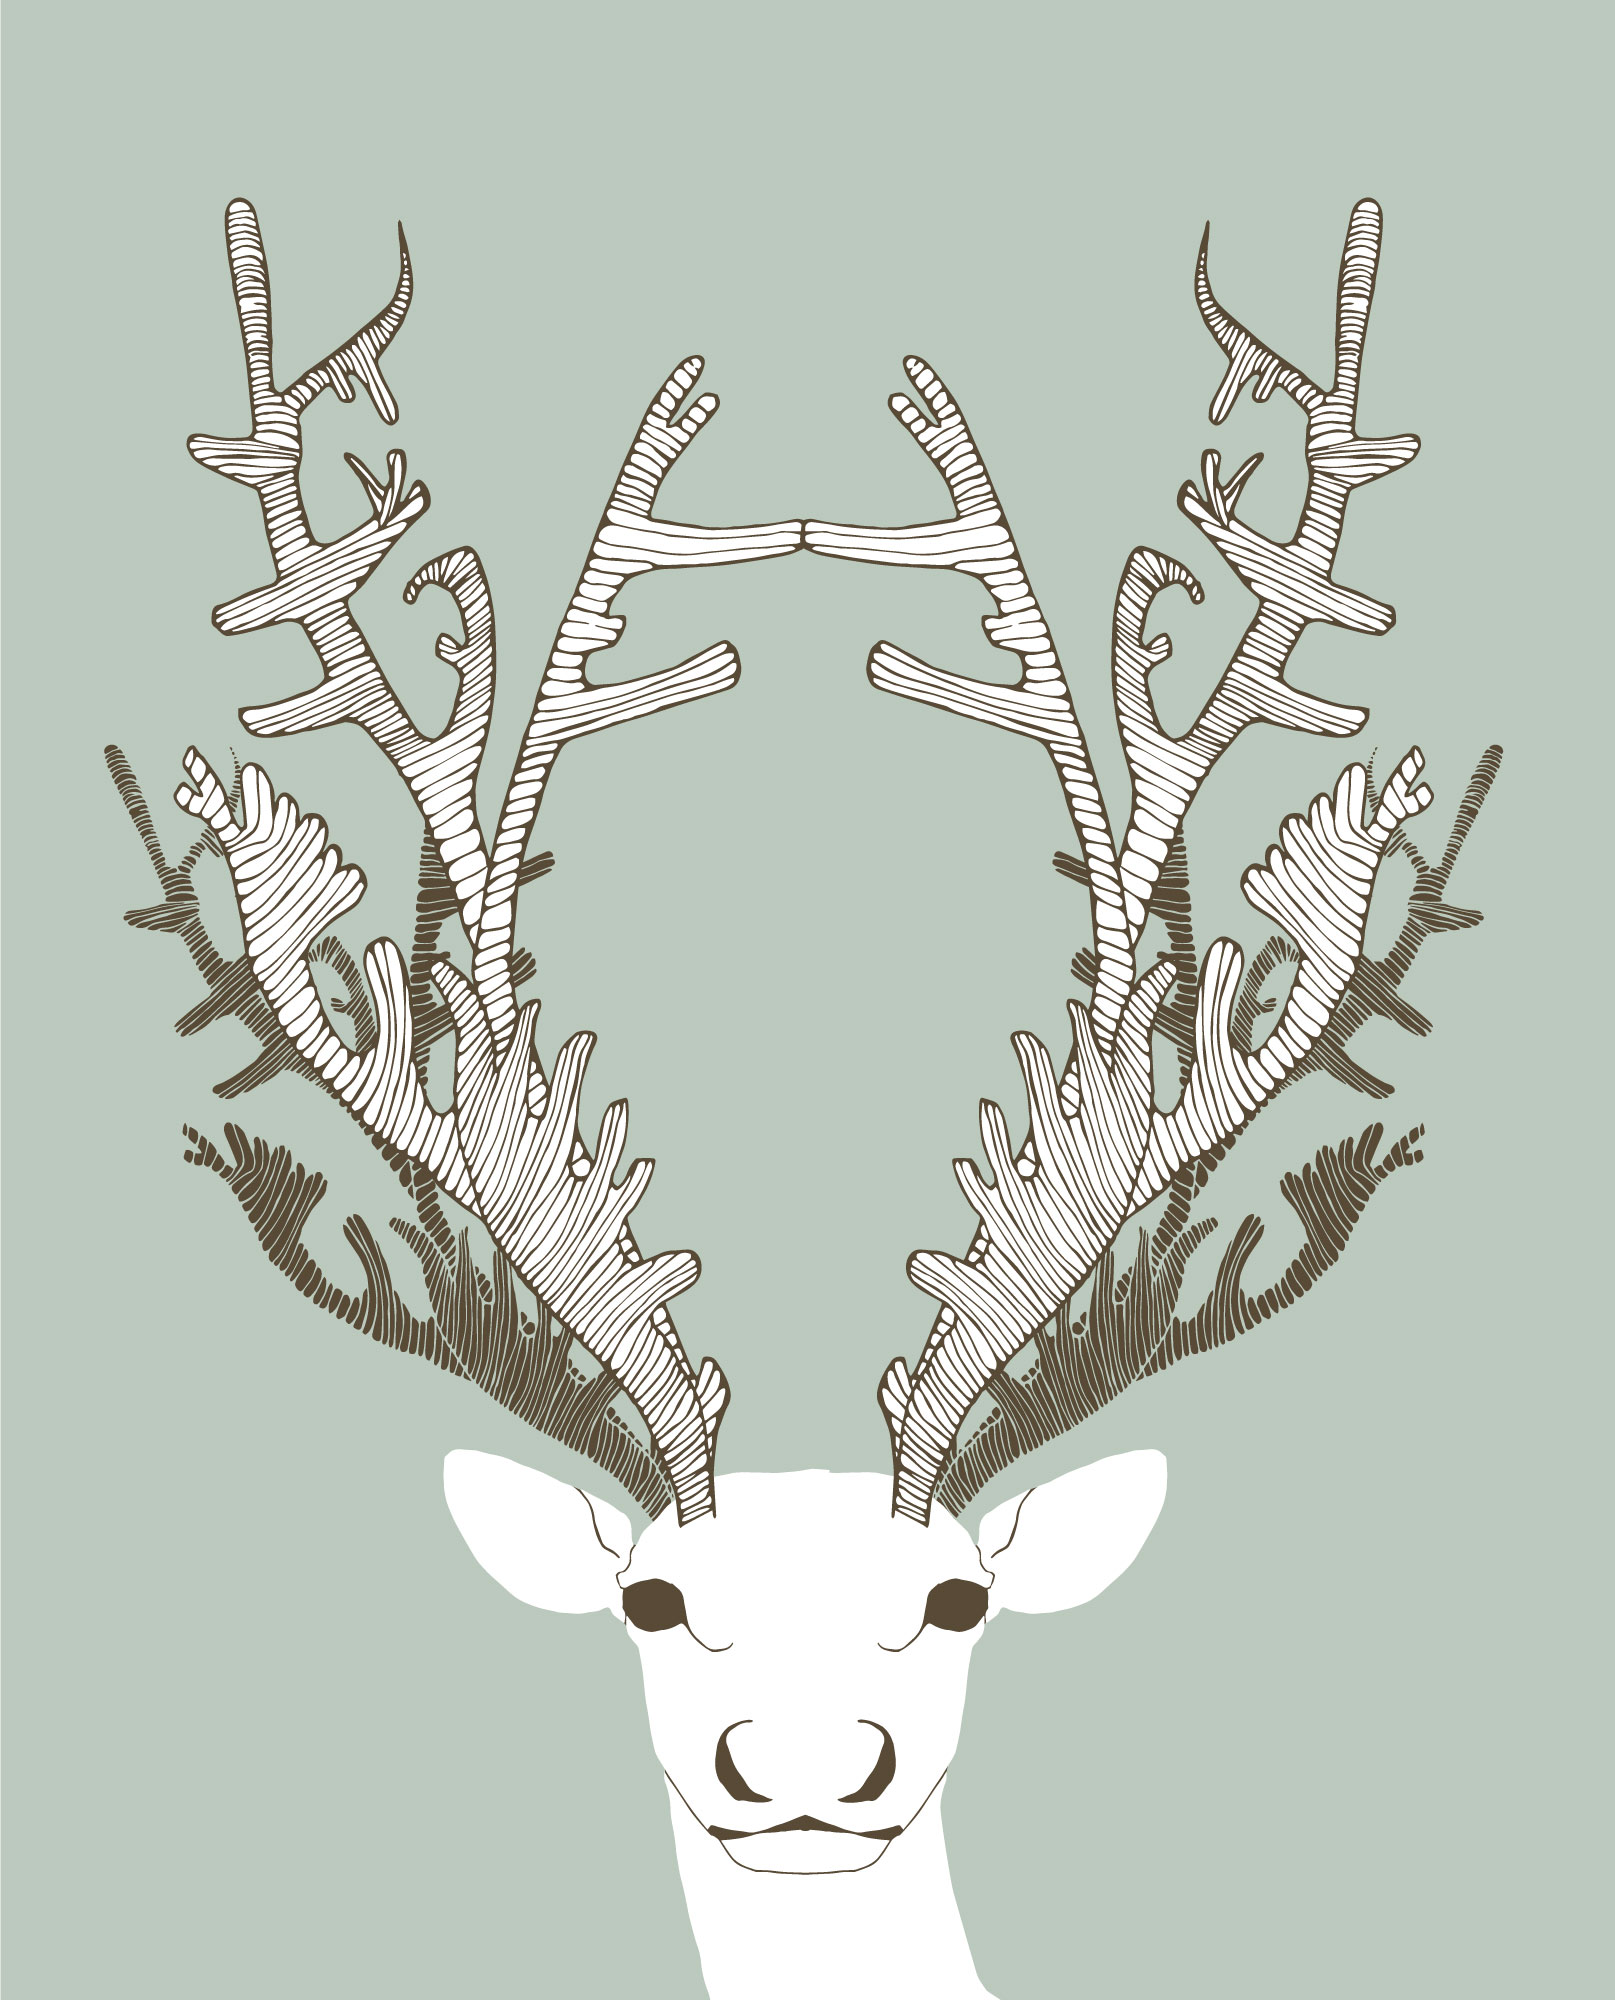 Caribou Illustration Wall Art - digital, custom colour artwork by Brina Schenk to match Dreaming of Caribou by Annex Suspended Art